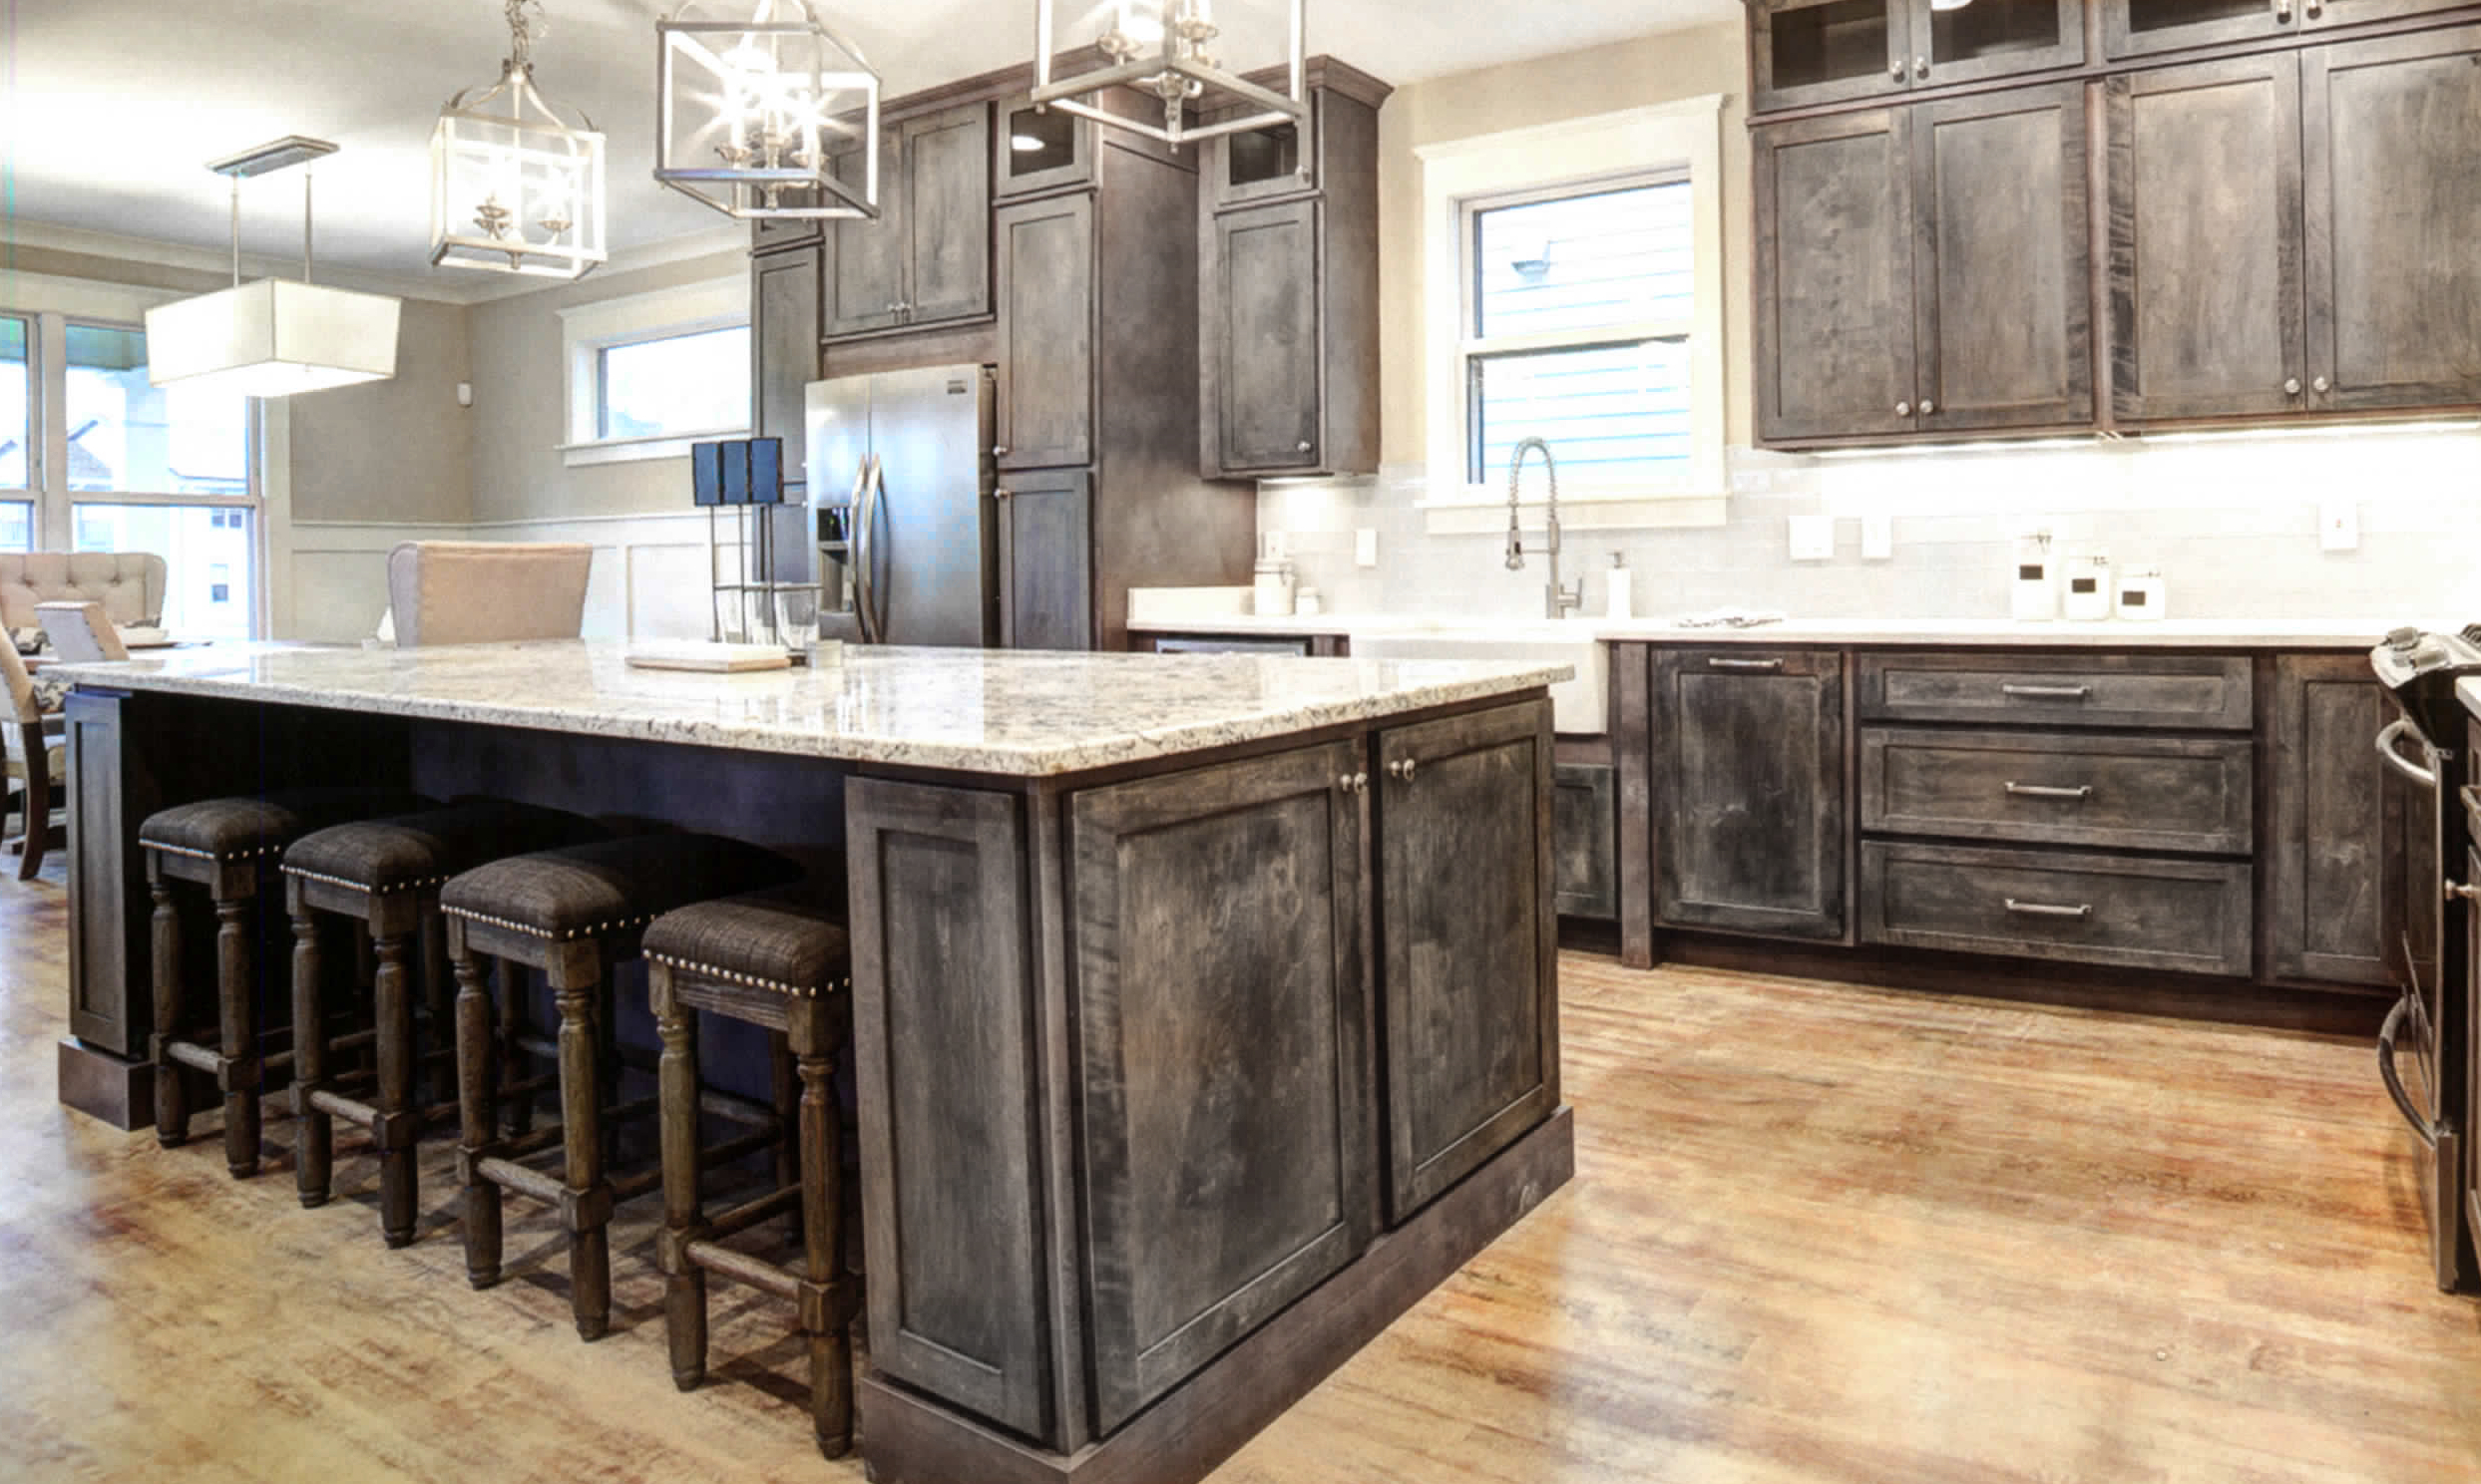 Rustic Shaker Gray kitchen cabinets, rta · Shaker Gray Rustic style kitchen  and vanities,